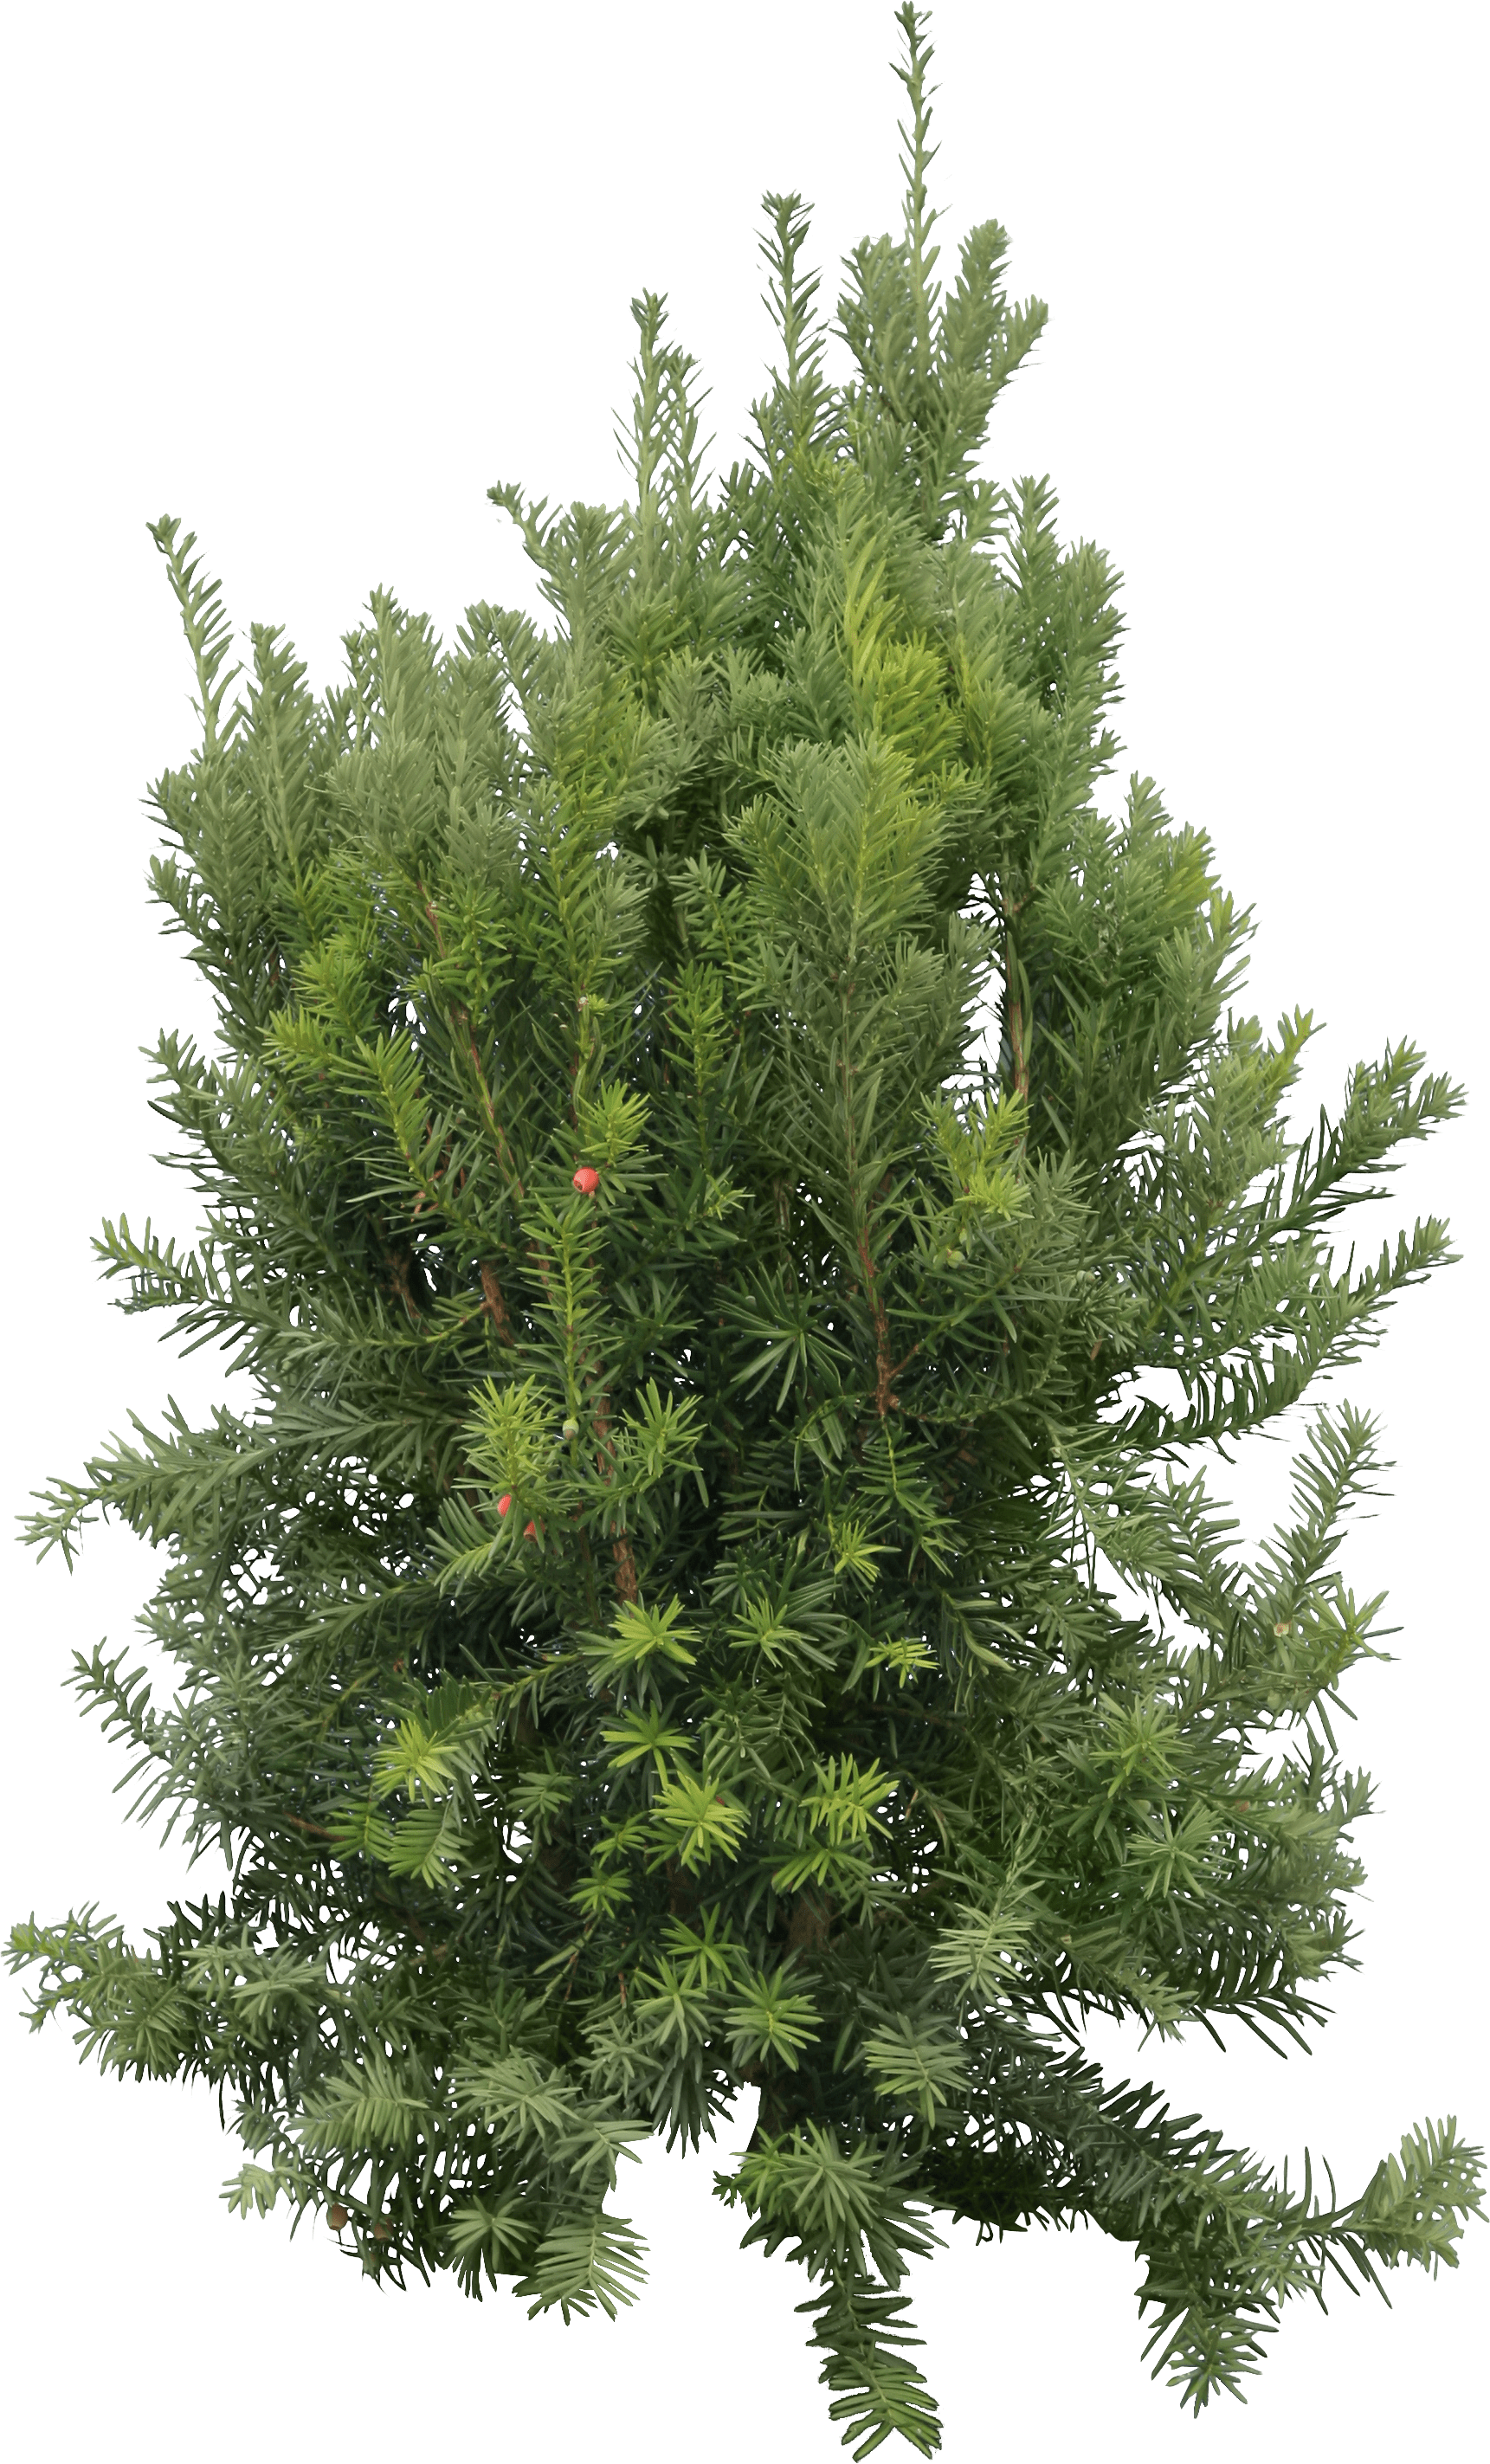 Fir Tree PNG Image - PurePNG   Free transparent CC0 PNG Image Library